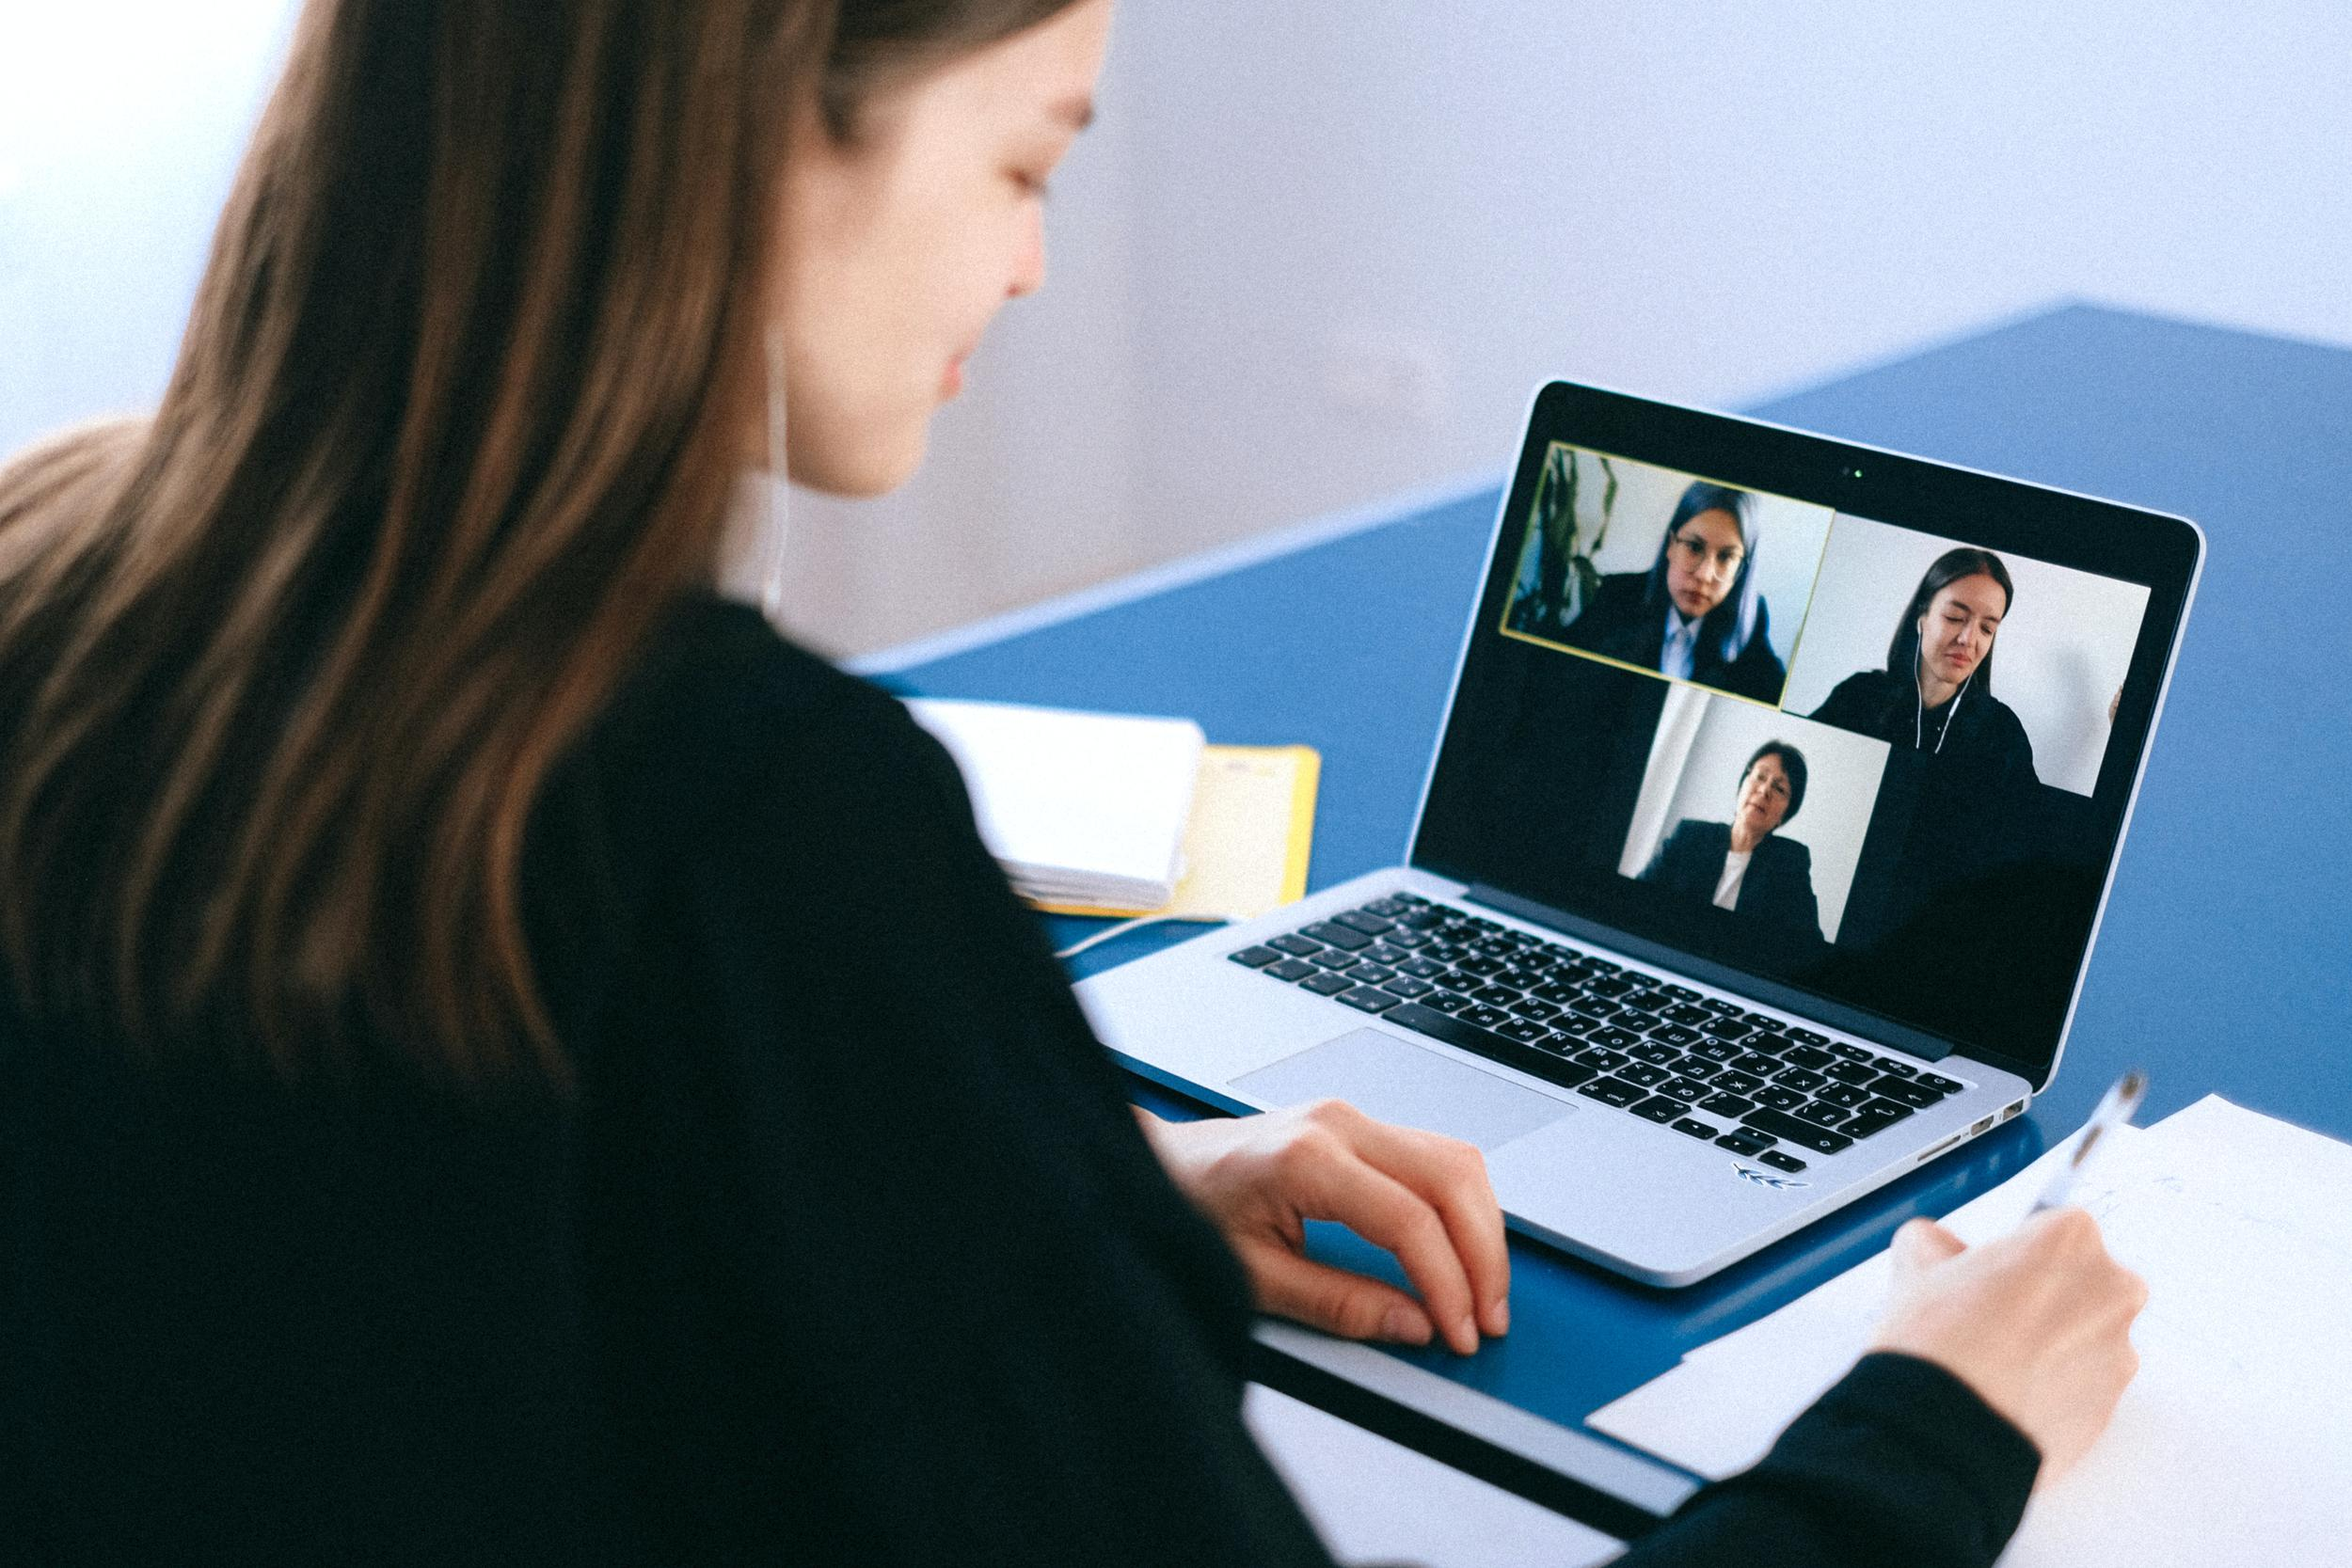 woman with headphones on participating in virtual meeting